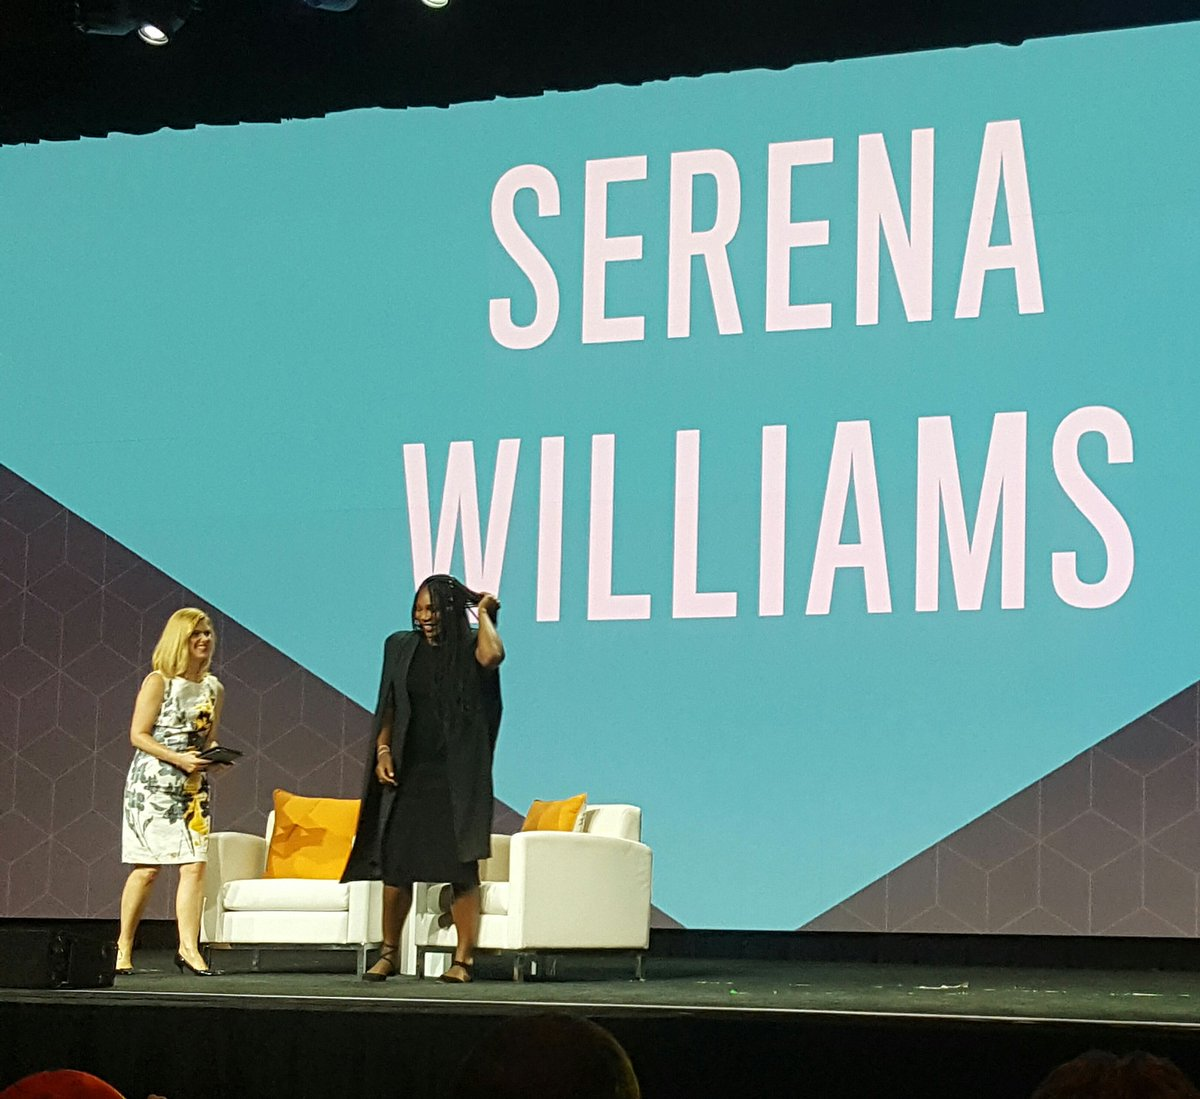 D_n_D: [Magento Imagine] Serena Williams on stage now for #Magentoimagine keynote! #realmagento https://t.co/T98yNu7HbO